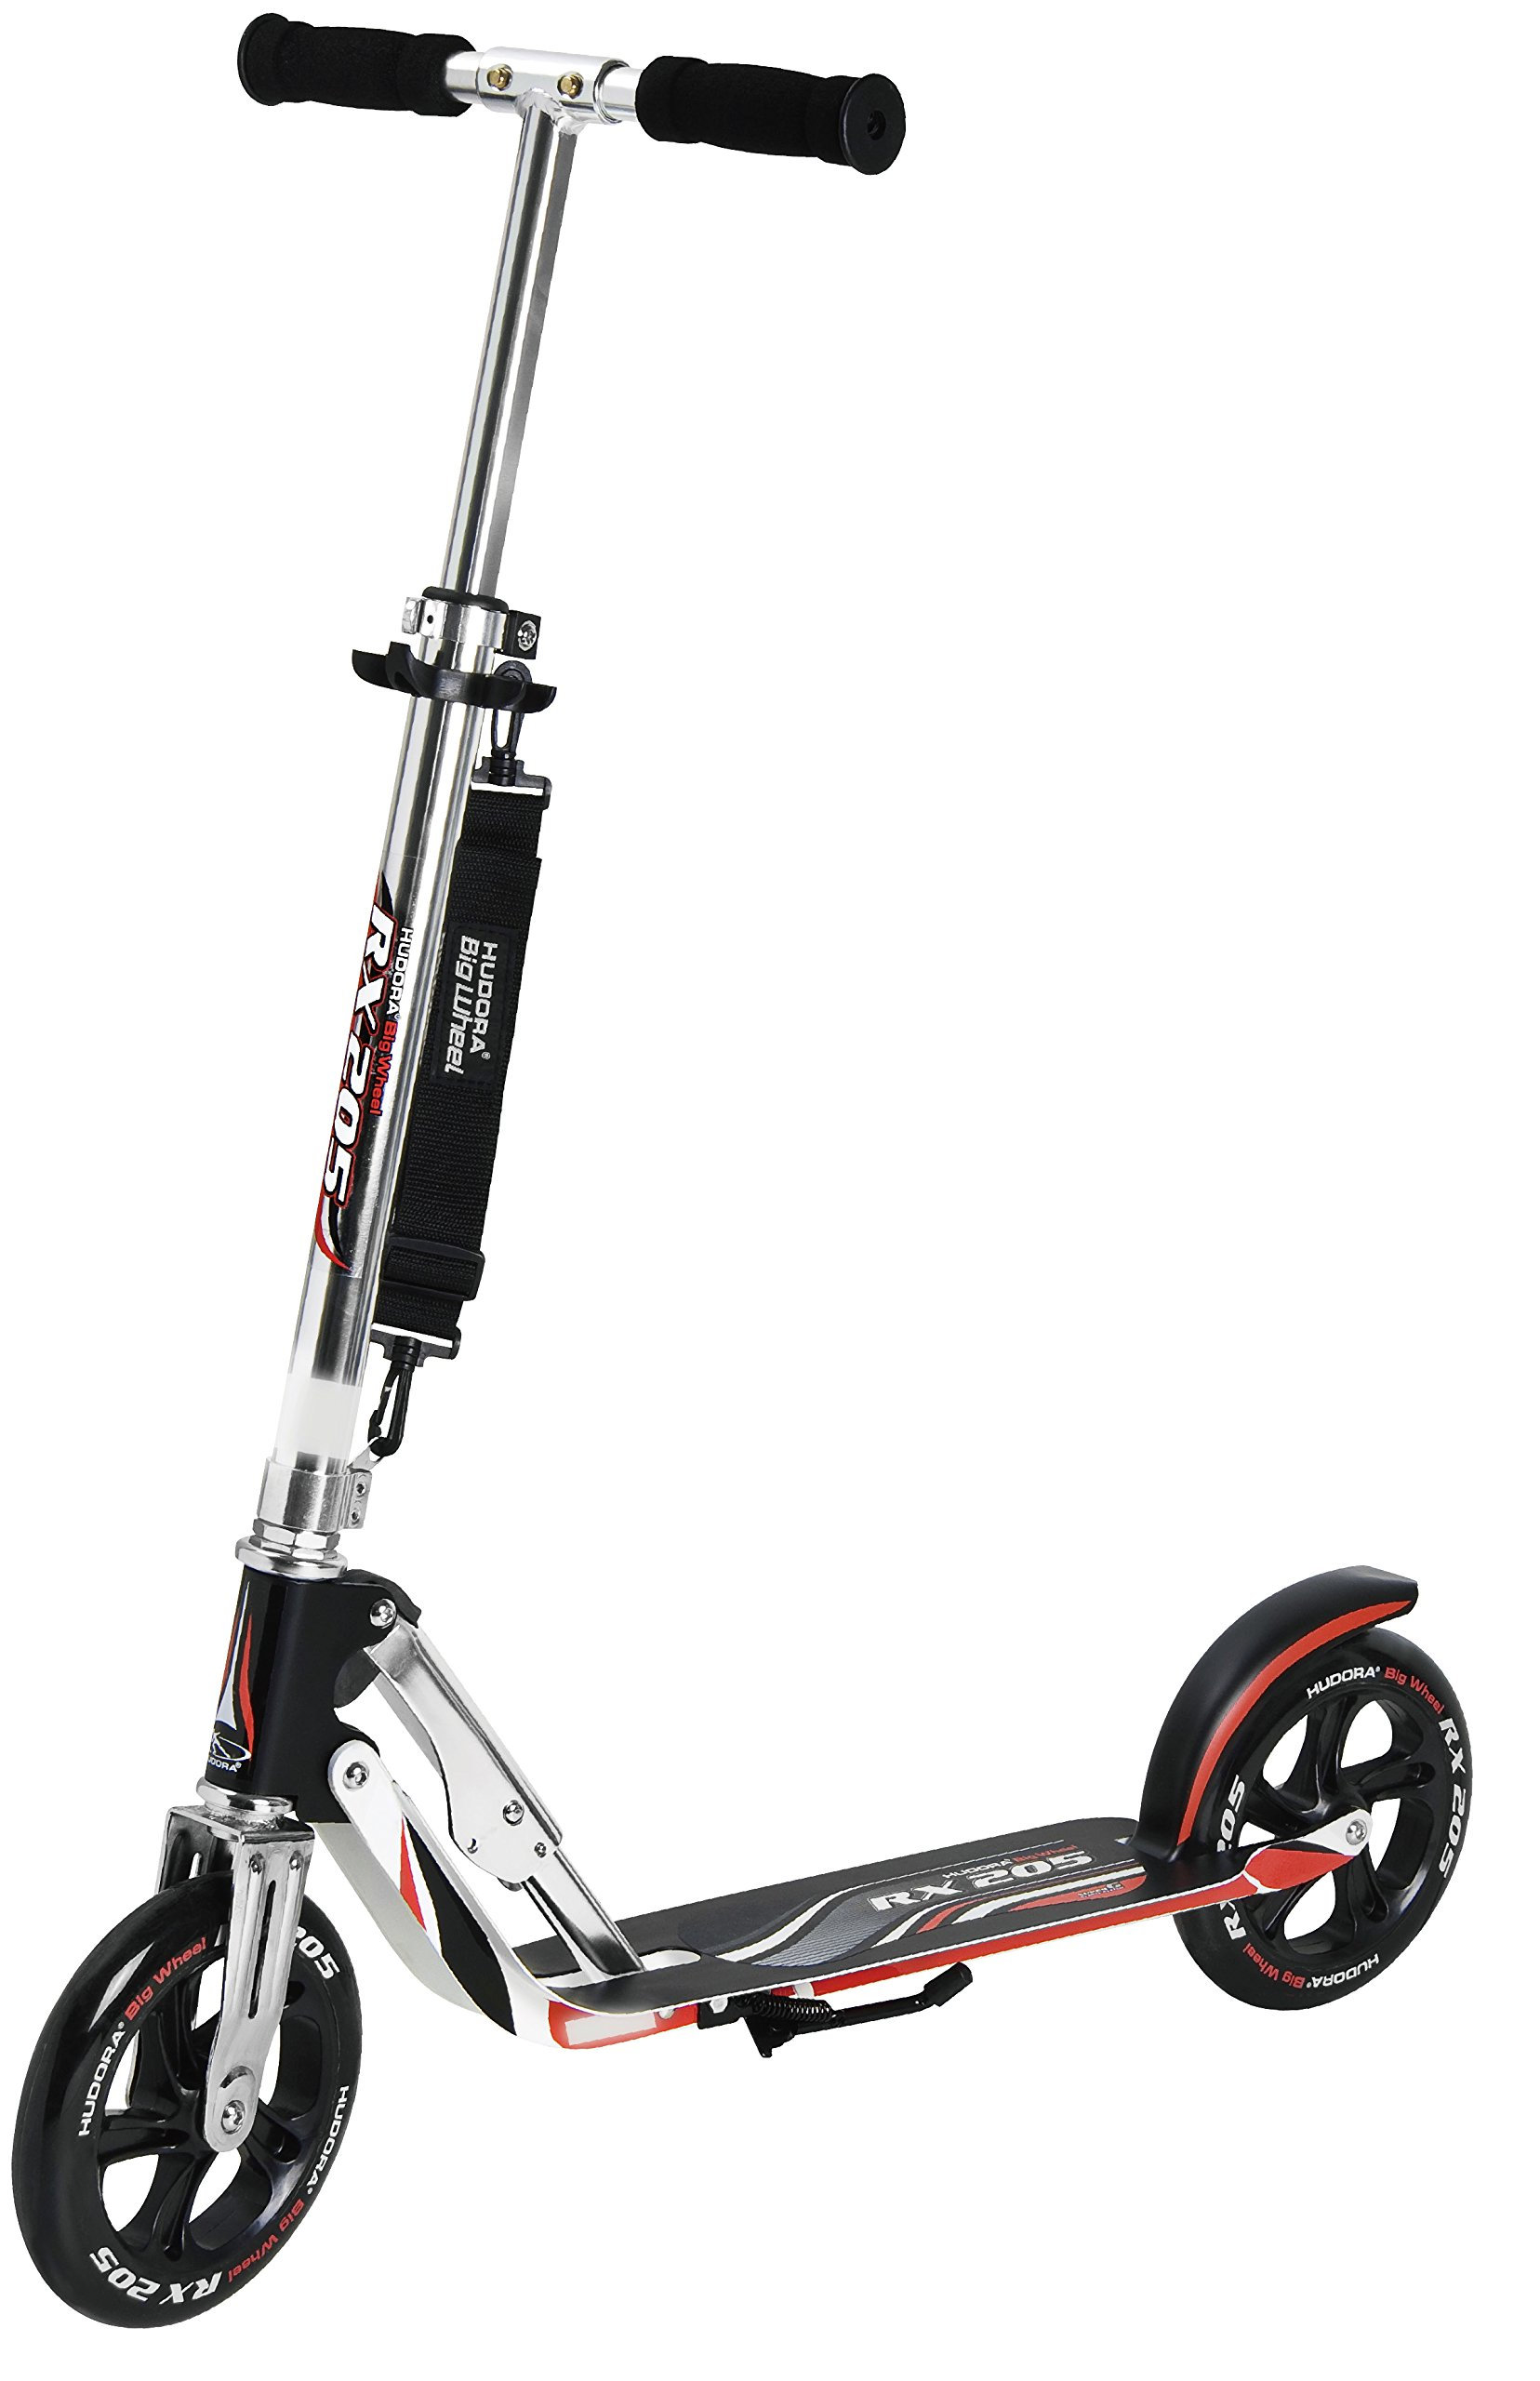 HUDORA 14724 Adult Folding Kick Scooter- 2 Big PU Wheels 205 mm, Adjustable Bar,Reinforced Deck by HUDORA